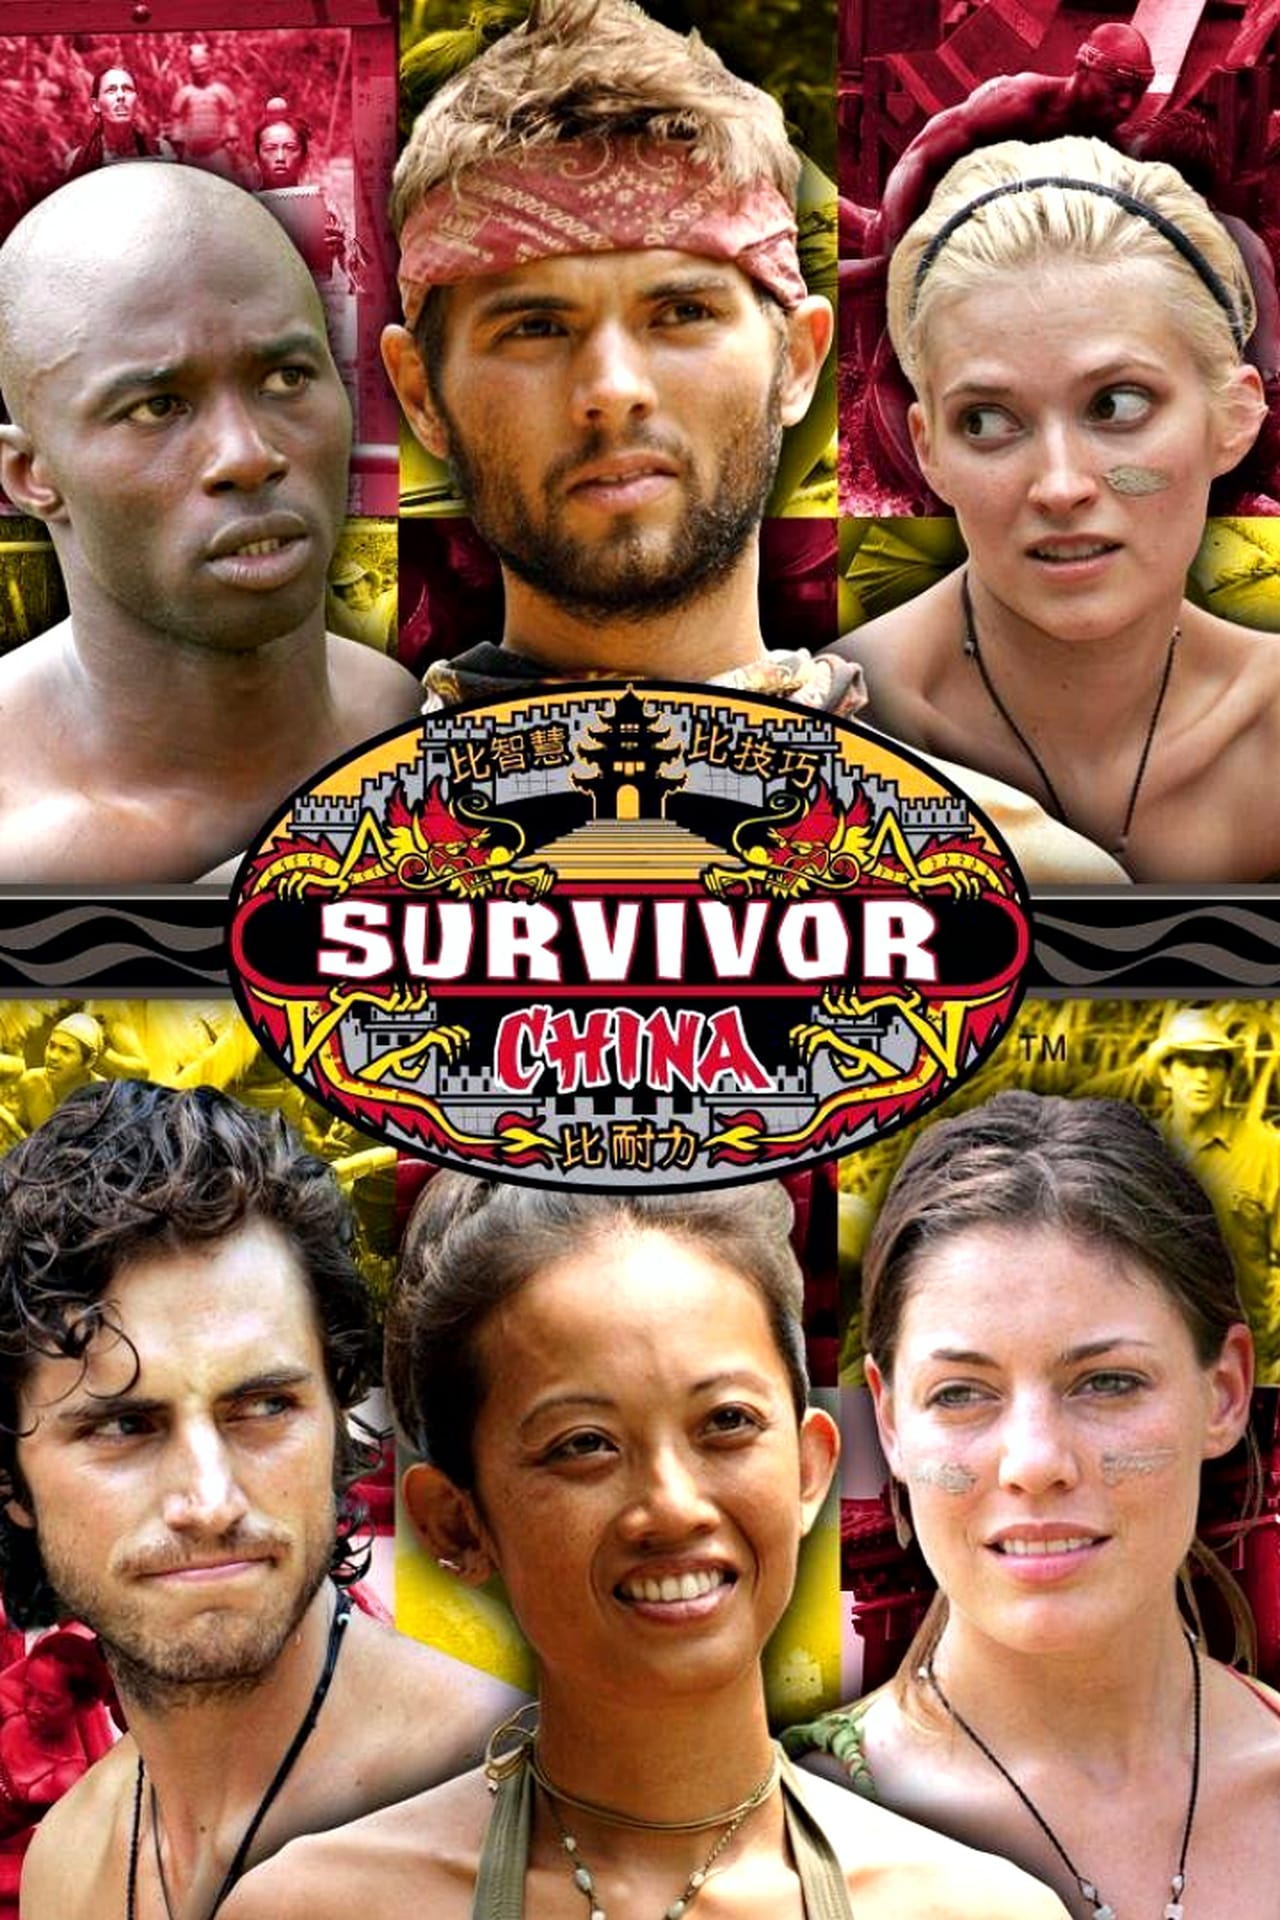 Putlocker Survivor Season 15 (2007)